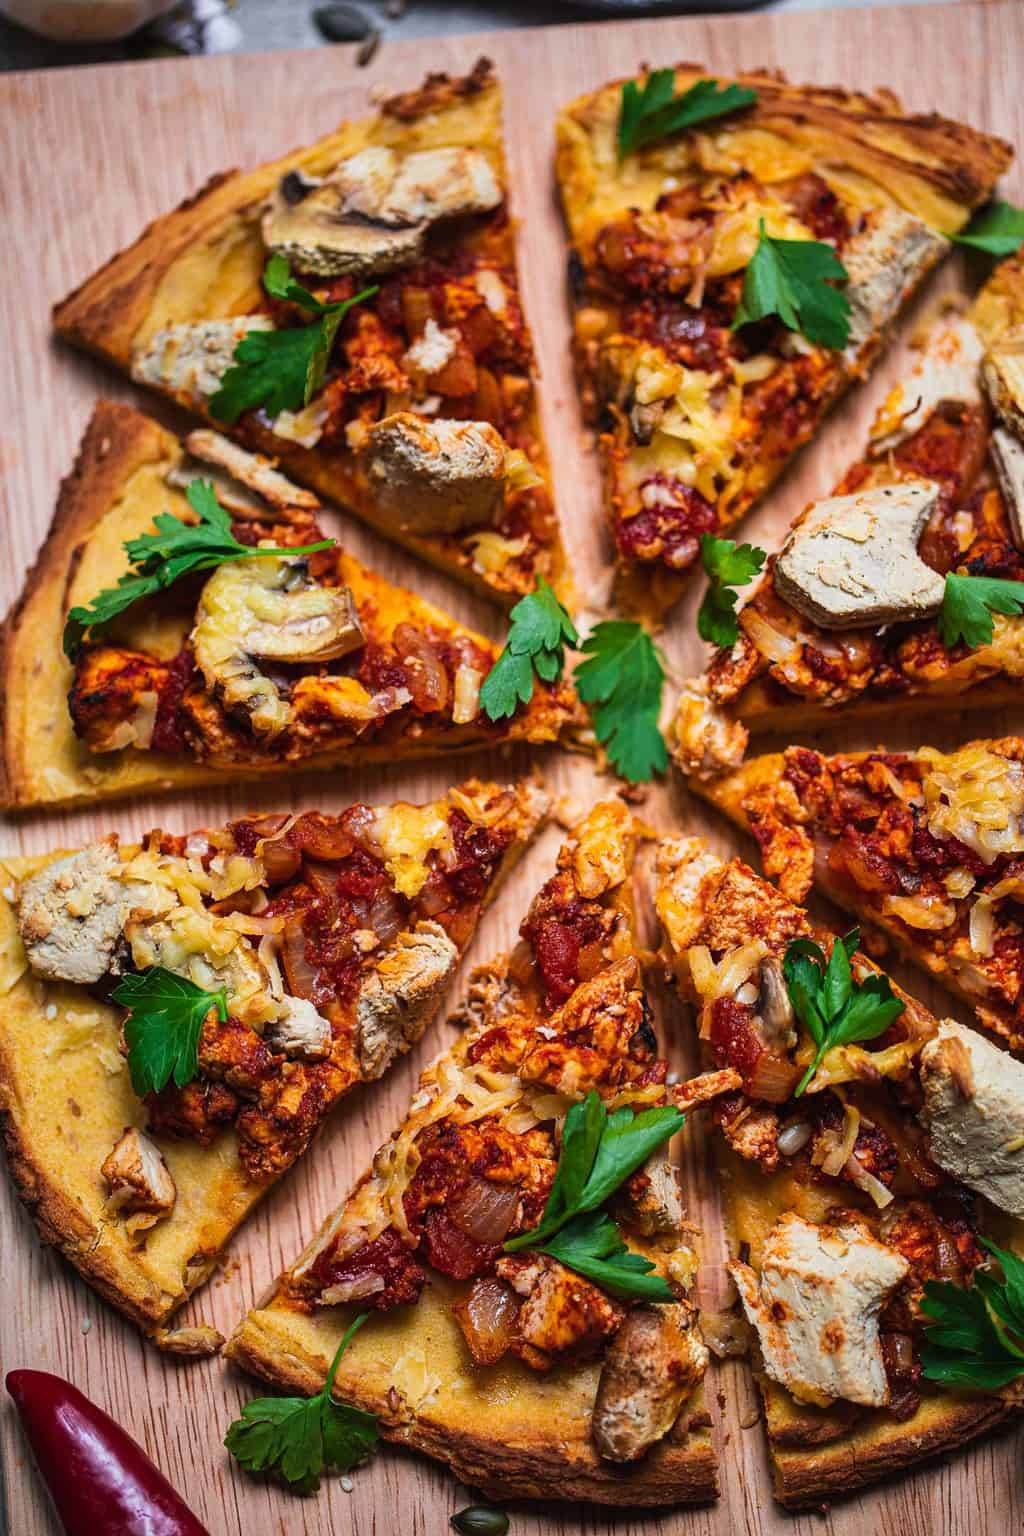 Vegan pizza with tofu and chick'n